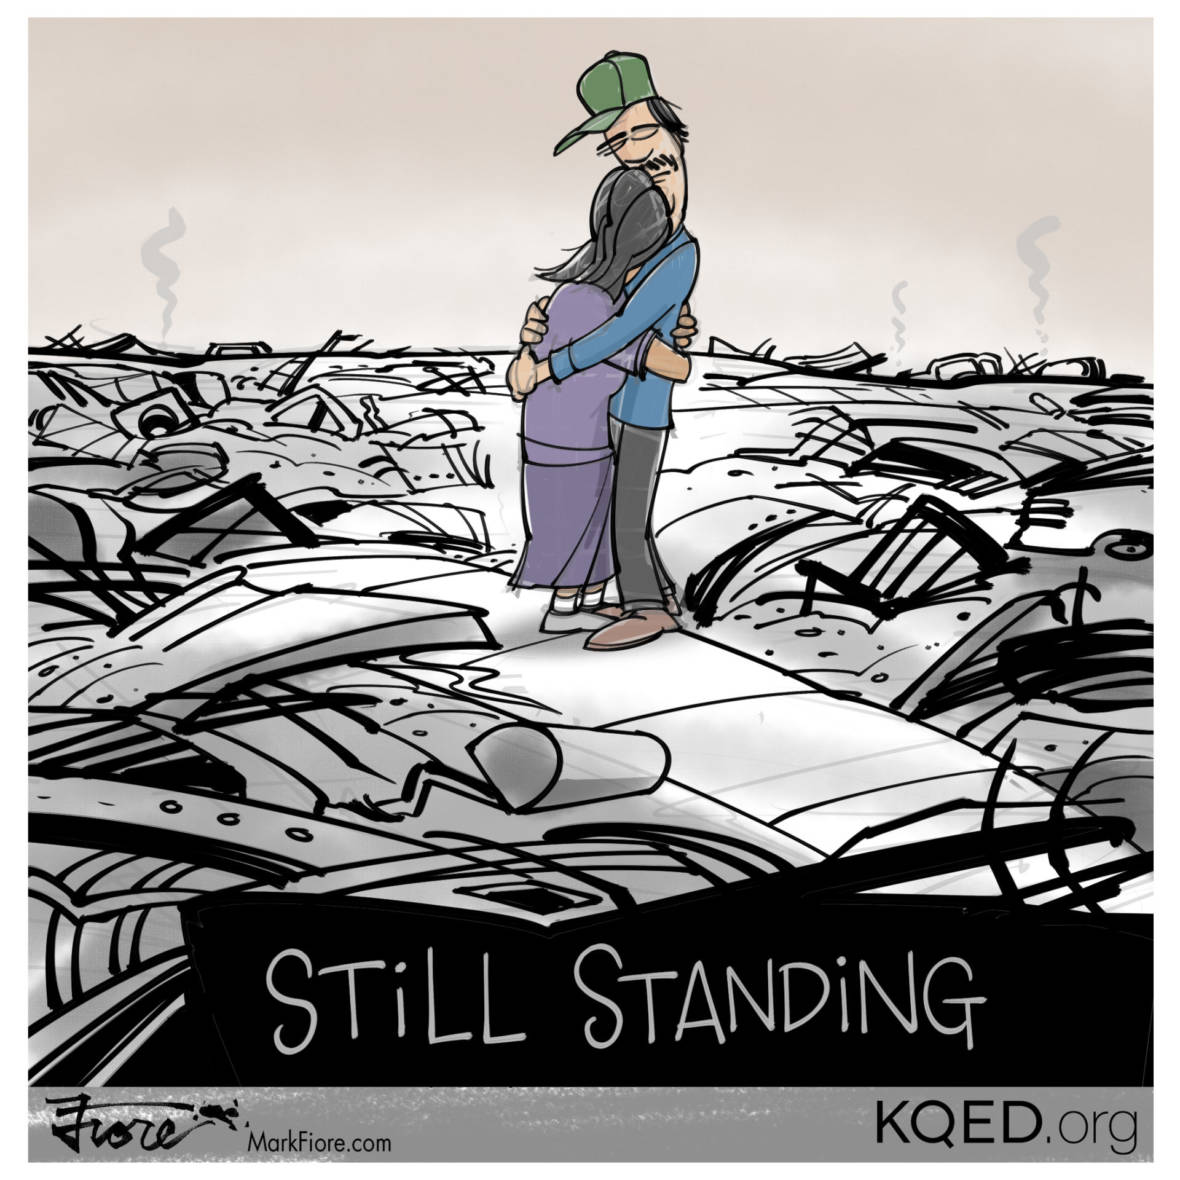 Still Standing by Mark Fiore